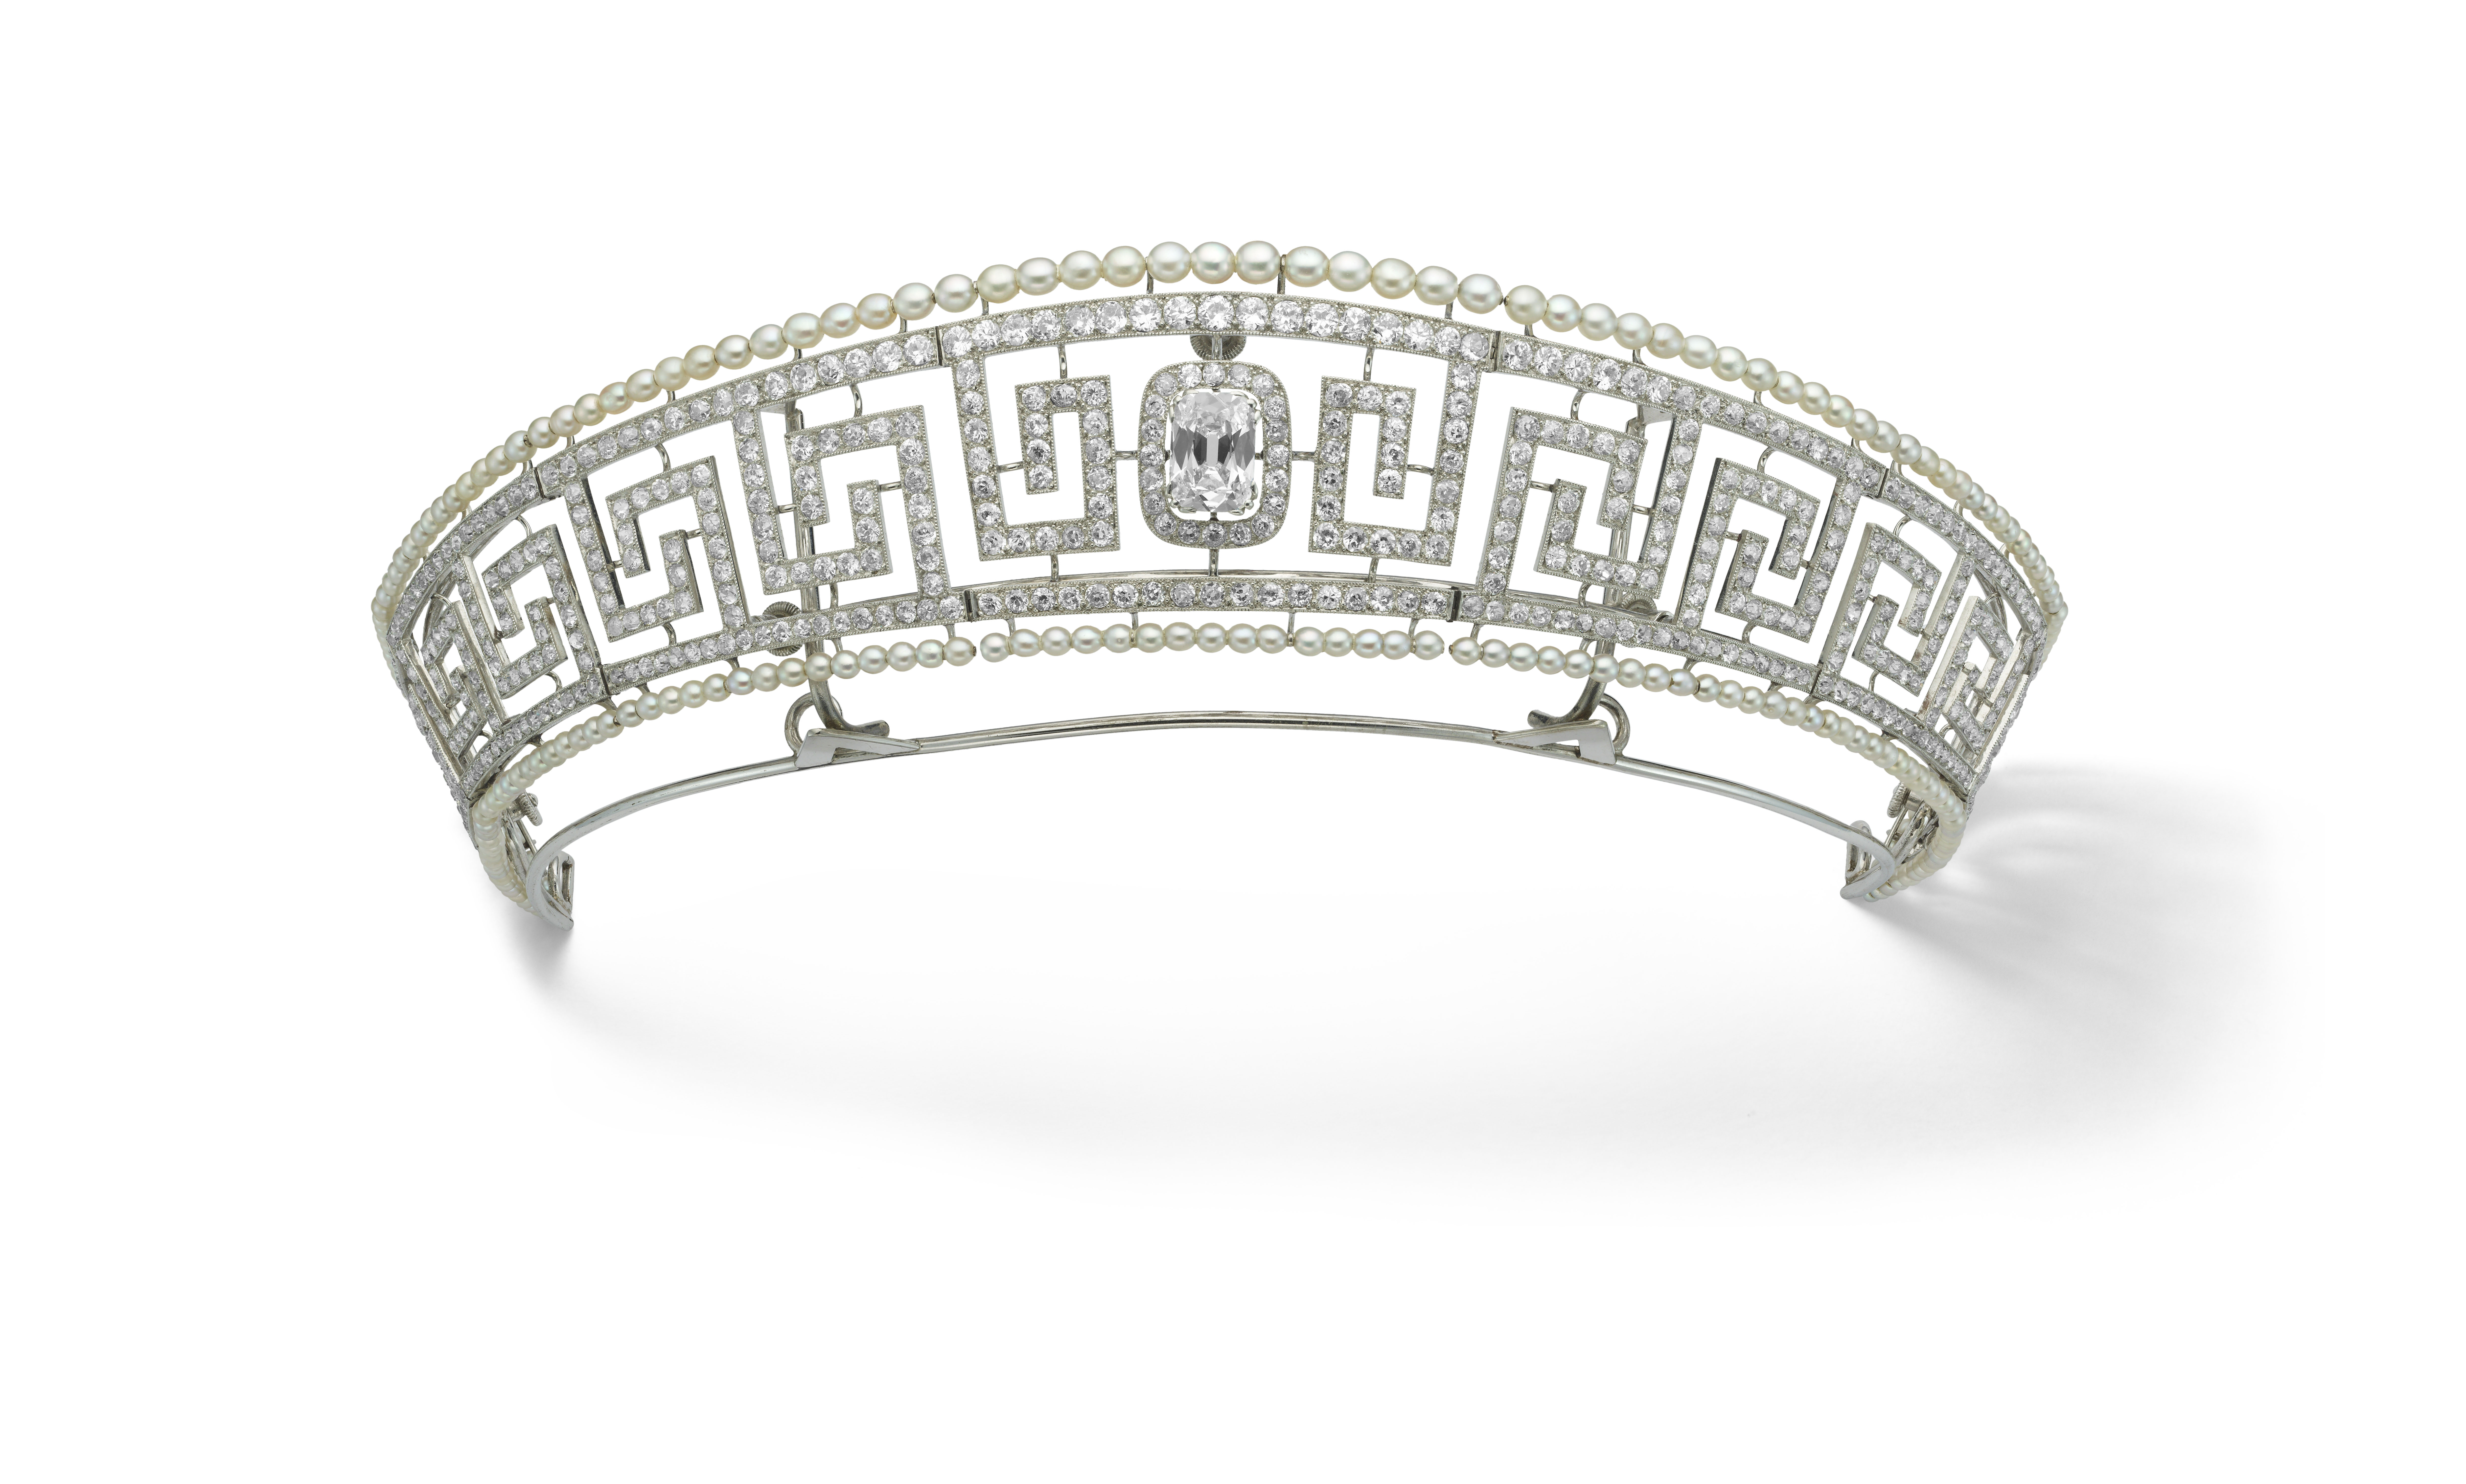 Diamond_and_pearl_tiara_saved_from_the_Lusitania_Cartier_Paris_1909._Previously_owned_by_Lady_Marguerite_Allan._Marian_G+¬rard_Ca